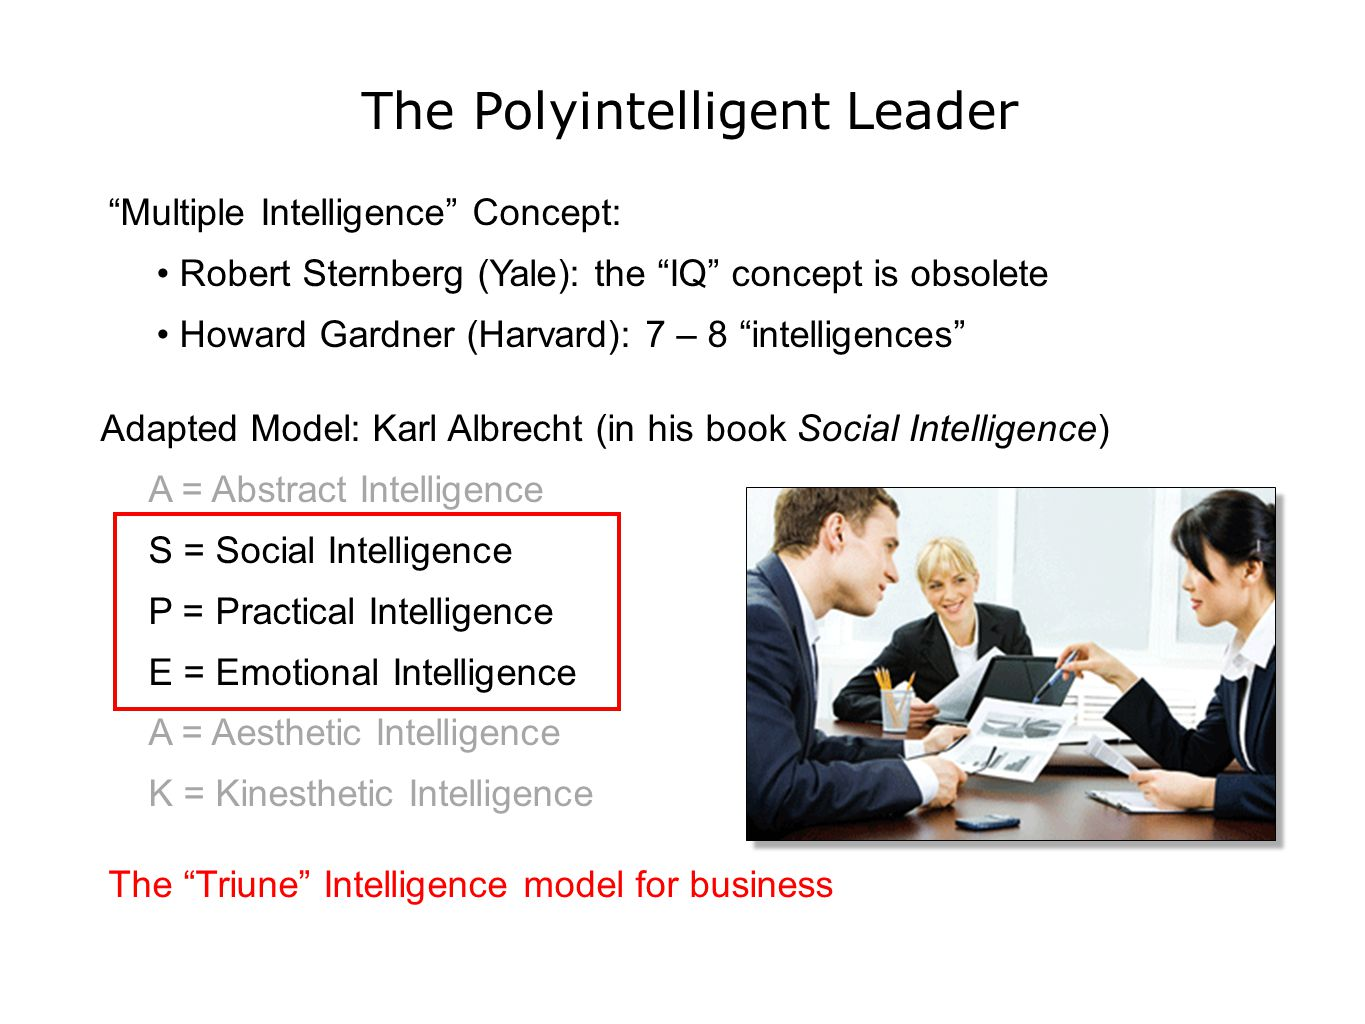 The Polyintelligent Leader Multiple Intelligence Concept: Robert Sternberg (Yale): the IQ concept is obsolete Howard Gardner (Harvard): 7 – 8 intelligences Adapted Model: Karl Albrecht (in his book Social Intelligence) A = Abstract Intelligence S = Social Intelligence P = Practical Intelligence E = Emotional Intelligence A = Aesthetic Intelligence K = Kinesthetic Intelligence The Triune Intelligence model for business